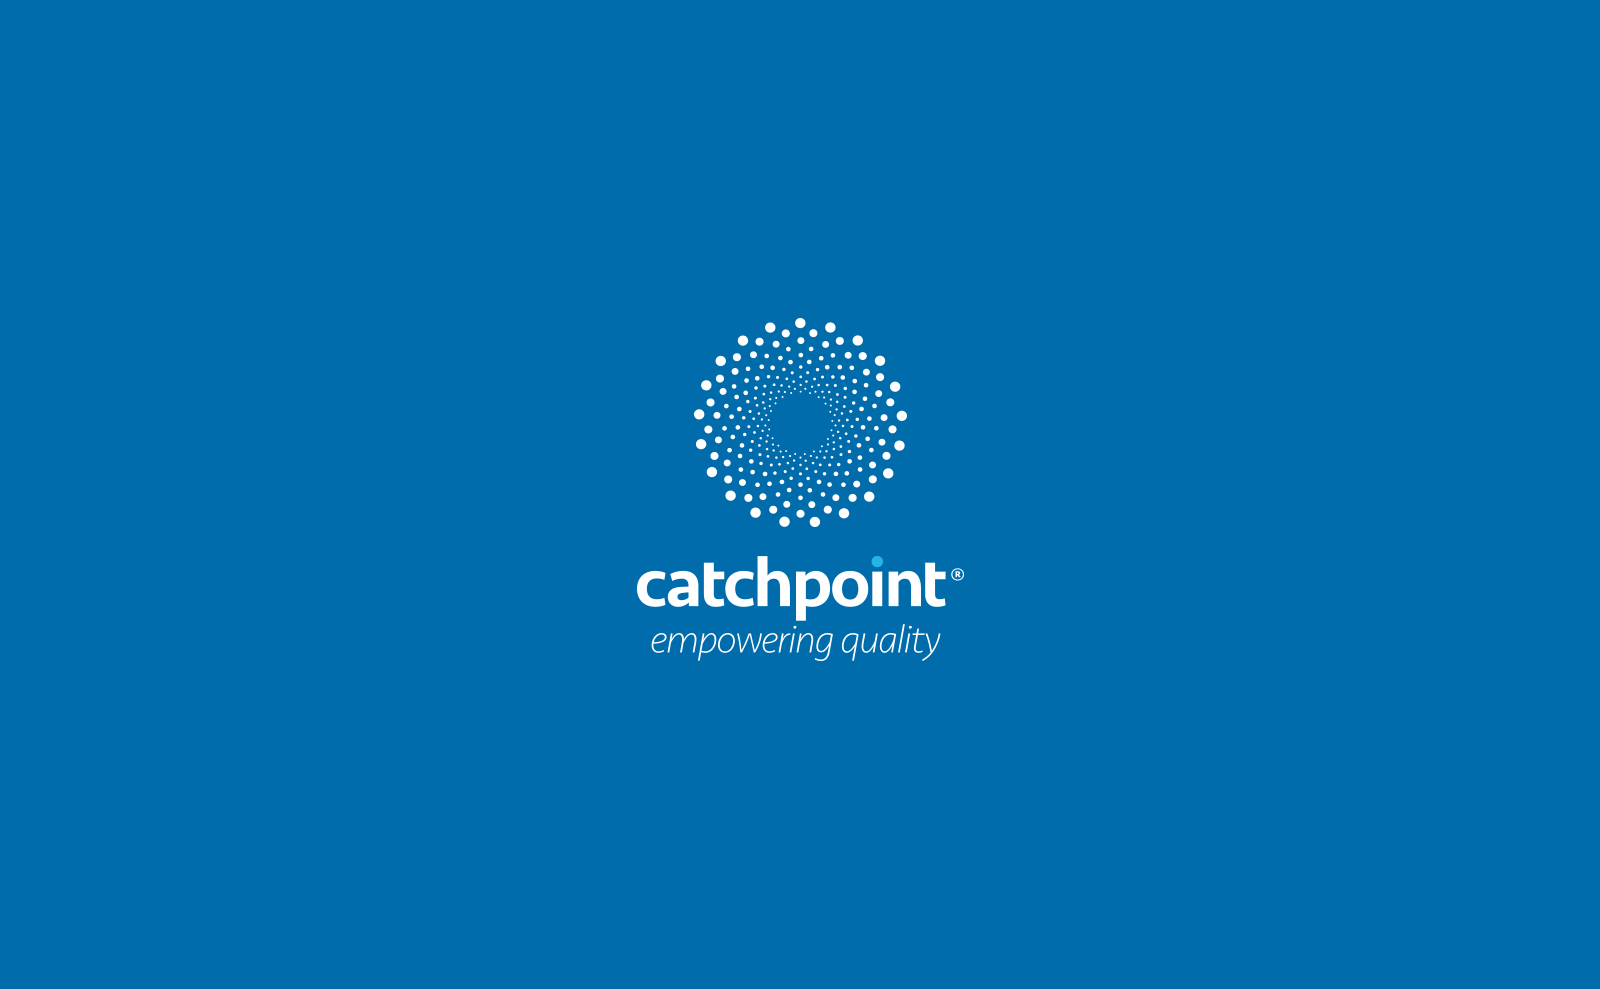 Catchpointロゴ